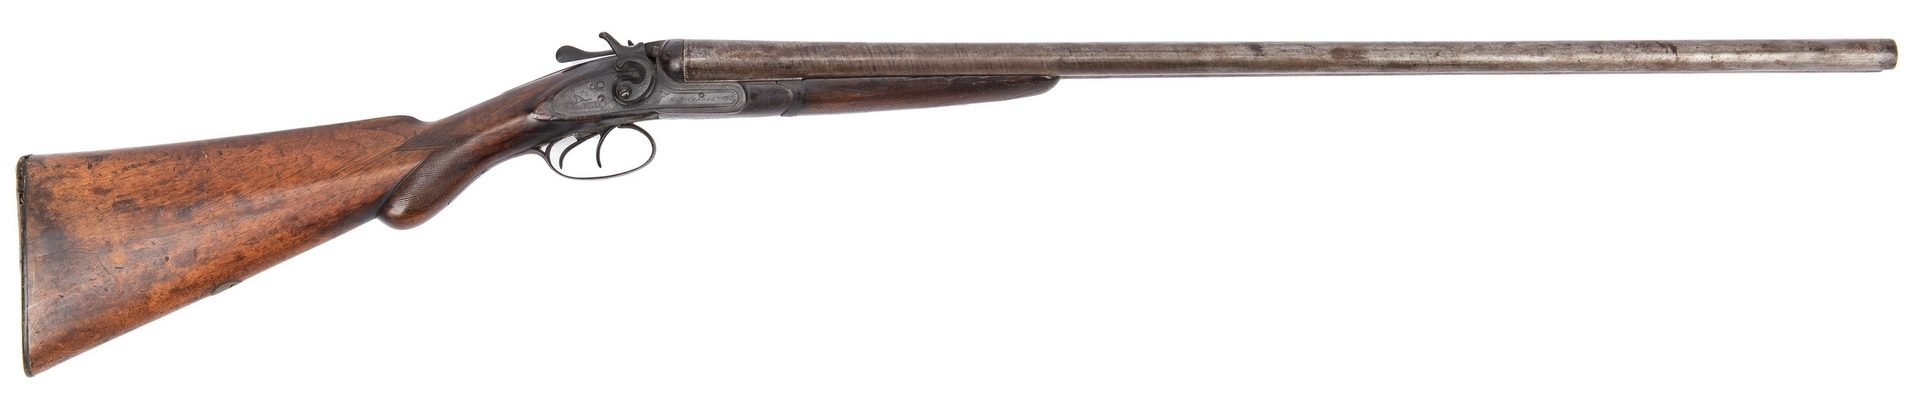 Lot 183: W. Richards Company, London Double Barrel Shotgun, 16 gauge